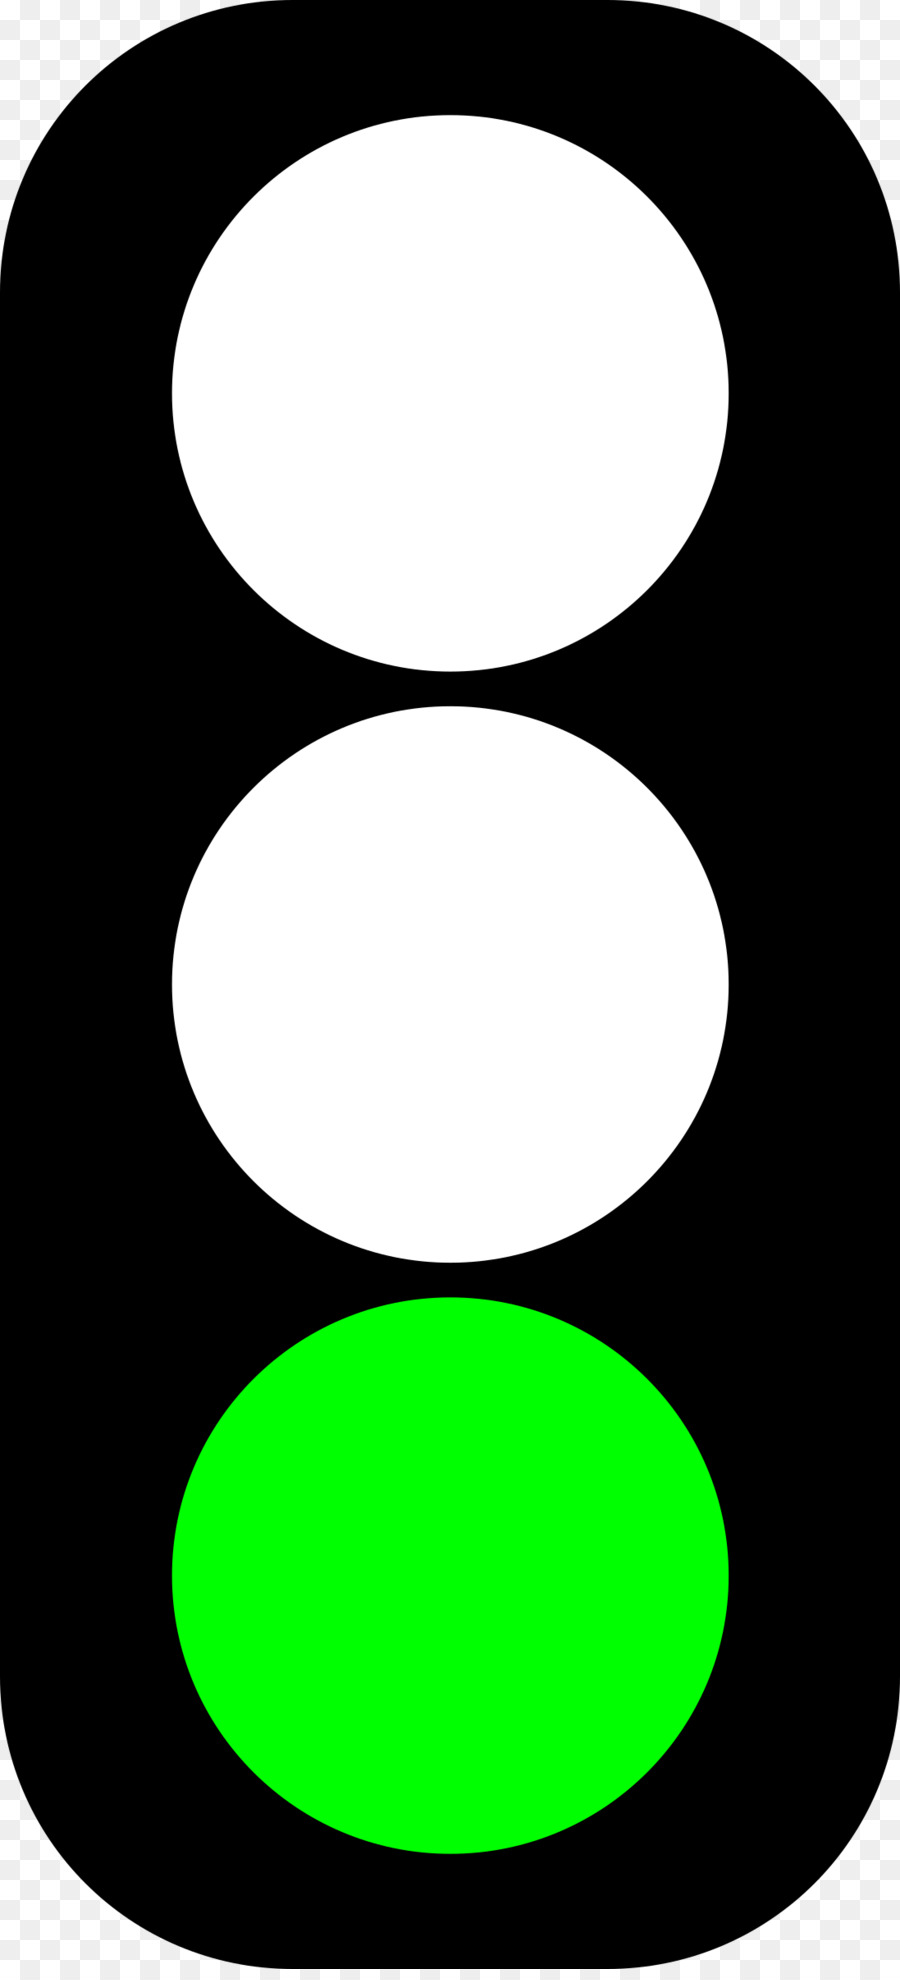 Traffic Light Cartoon clipart.